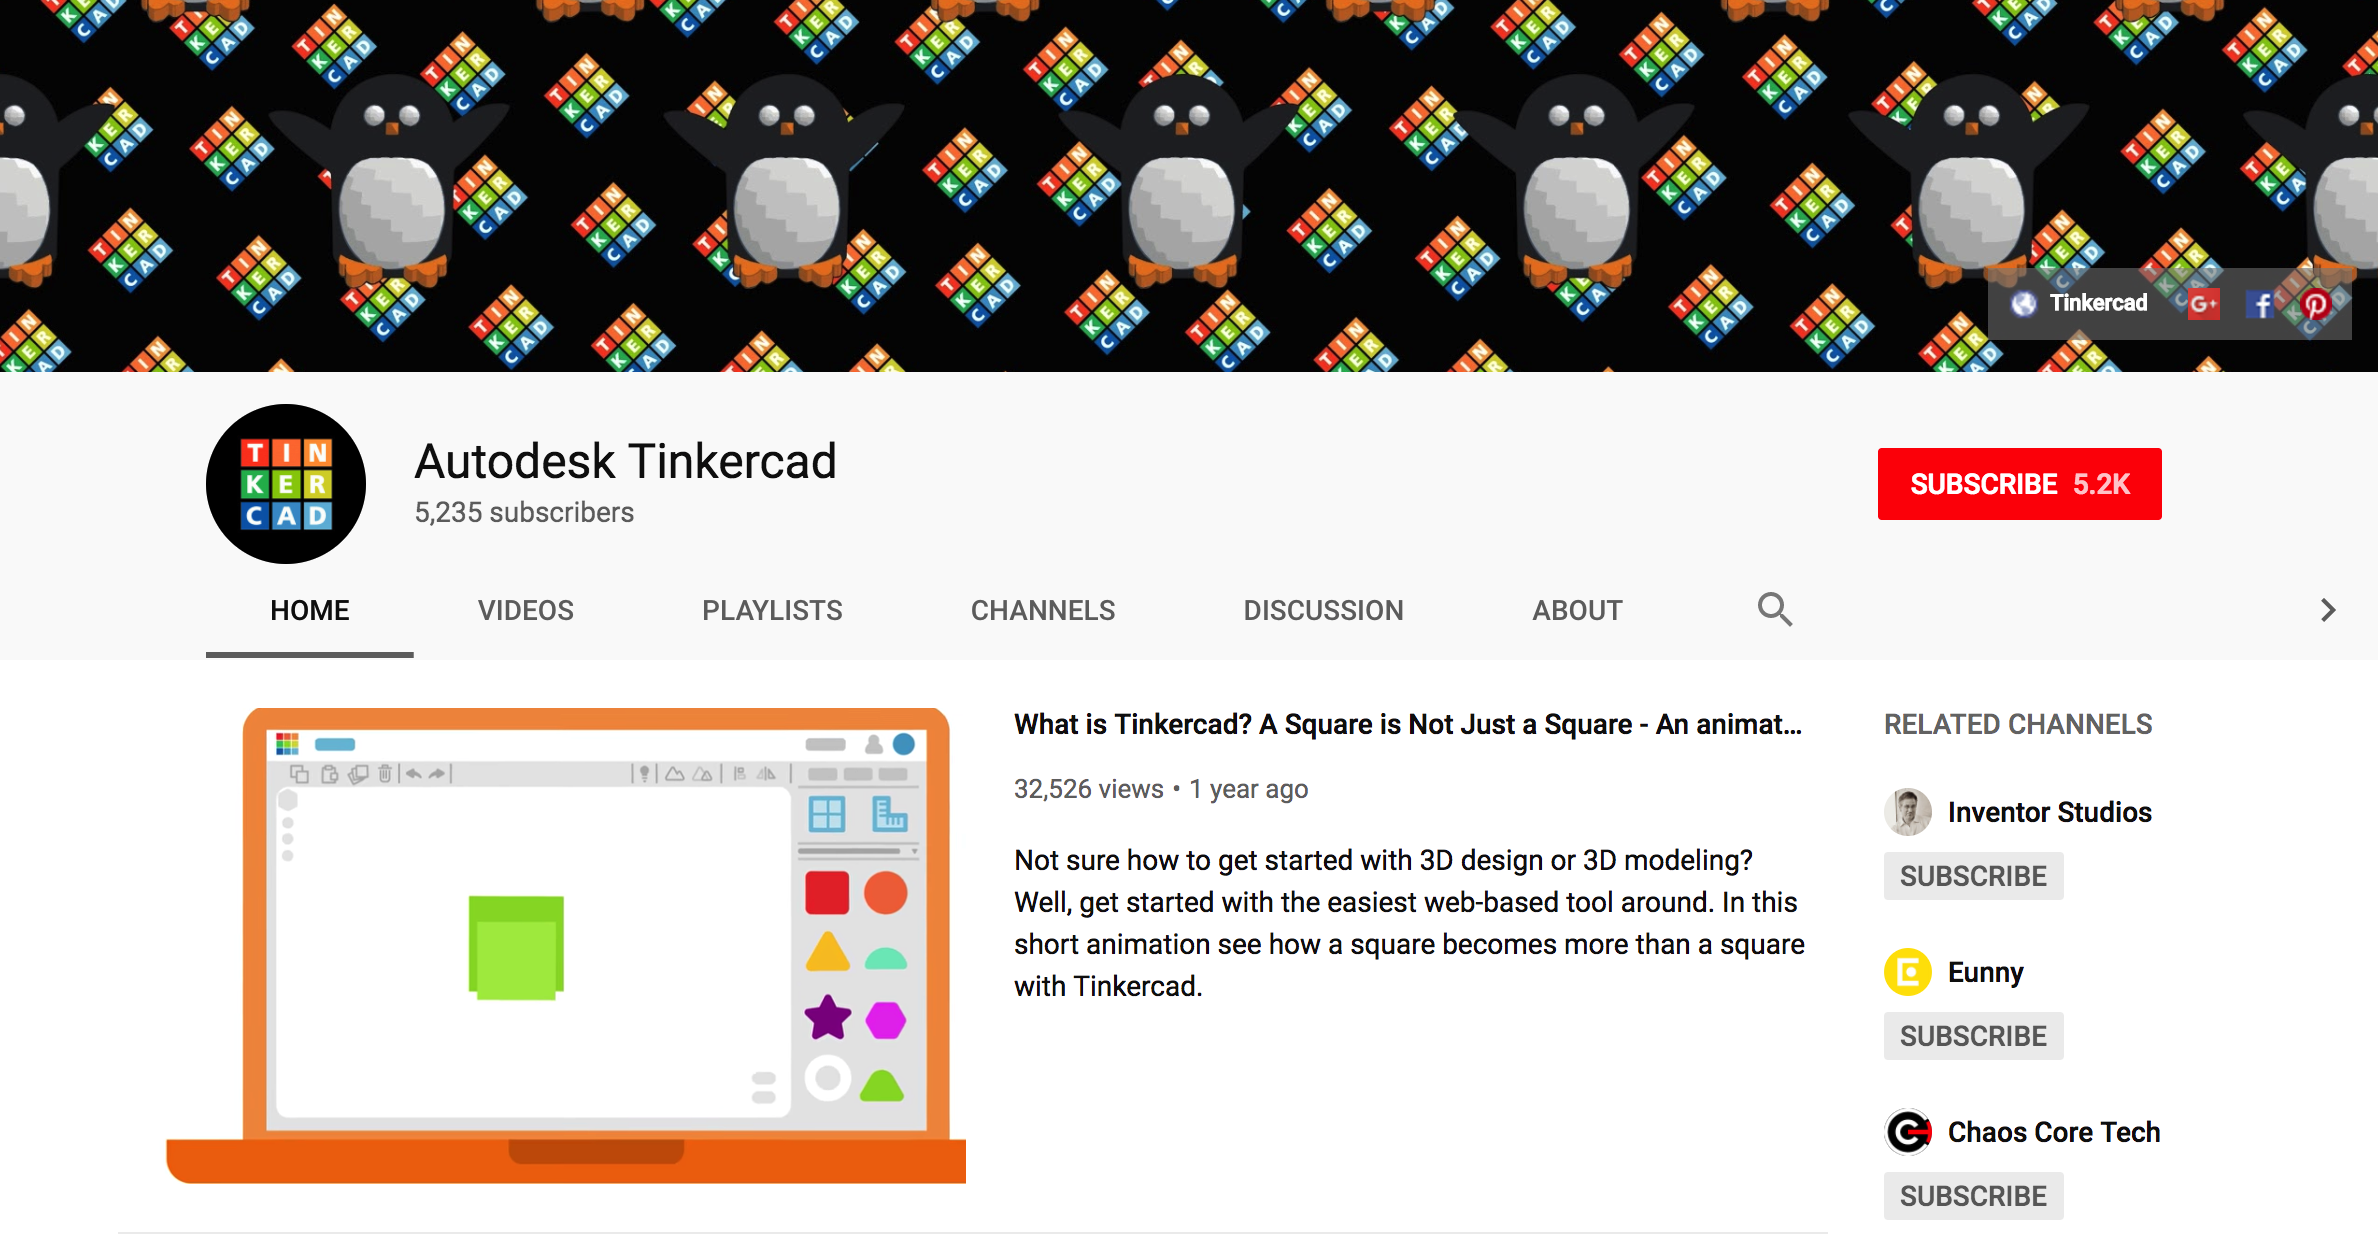 Tinkercad YouTube Channel